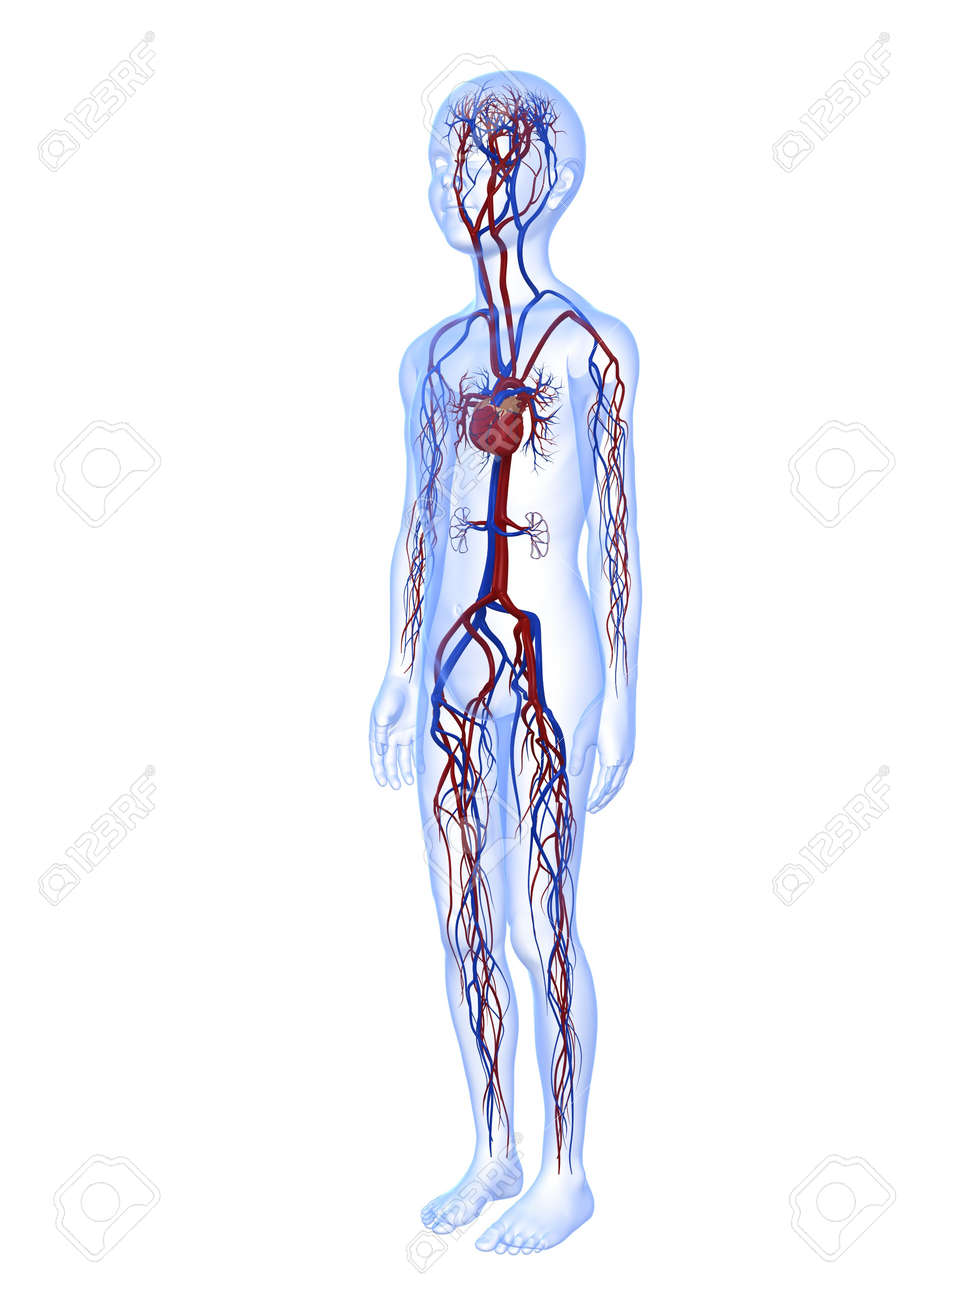 Male Child Anatomy With Vascular System Stock Photo, Picture And ...